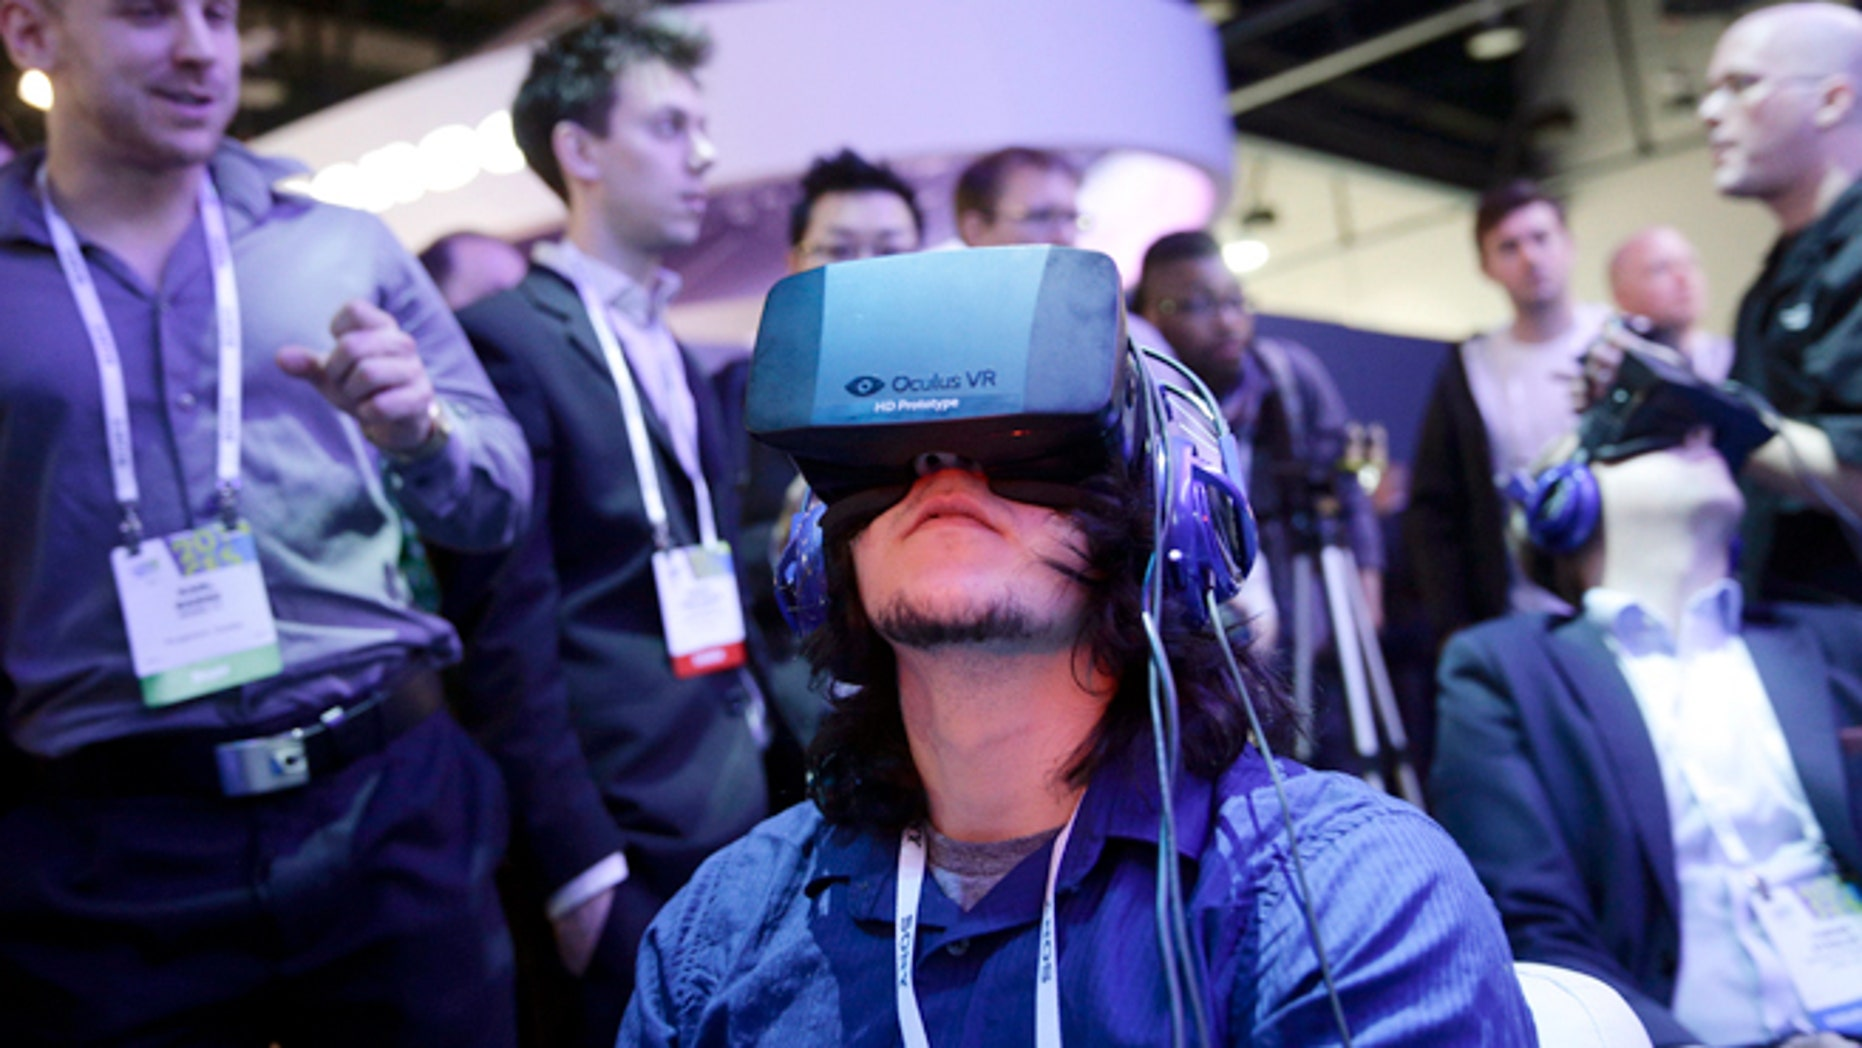 Attendees play a video game wearing Oculus Rift virtual reality headsets at the Intel booth at the International Consumer Electronics Show (CES), in Las Vegas.